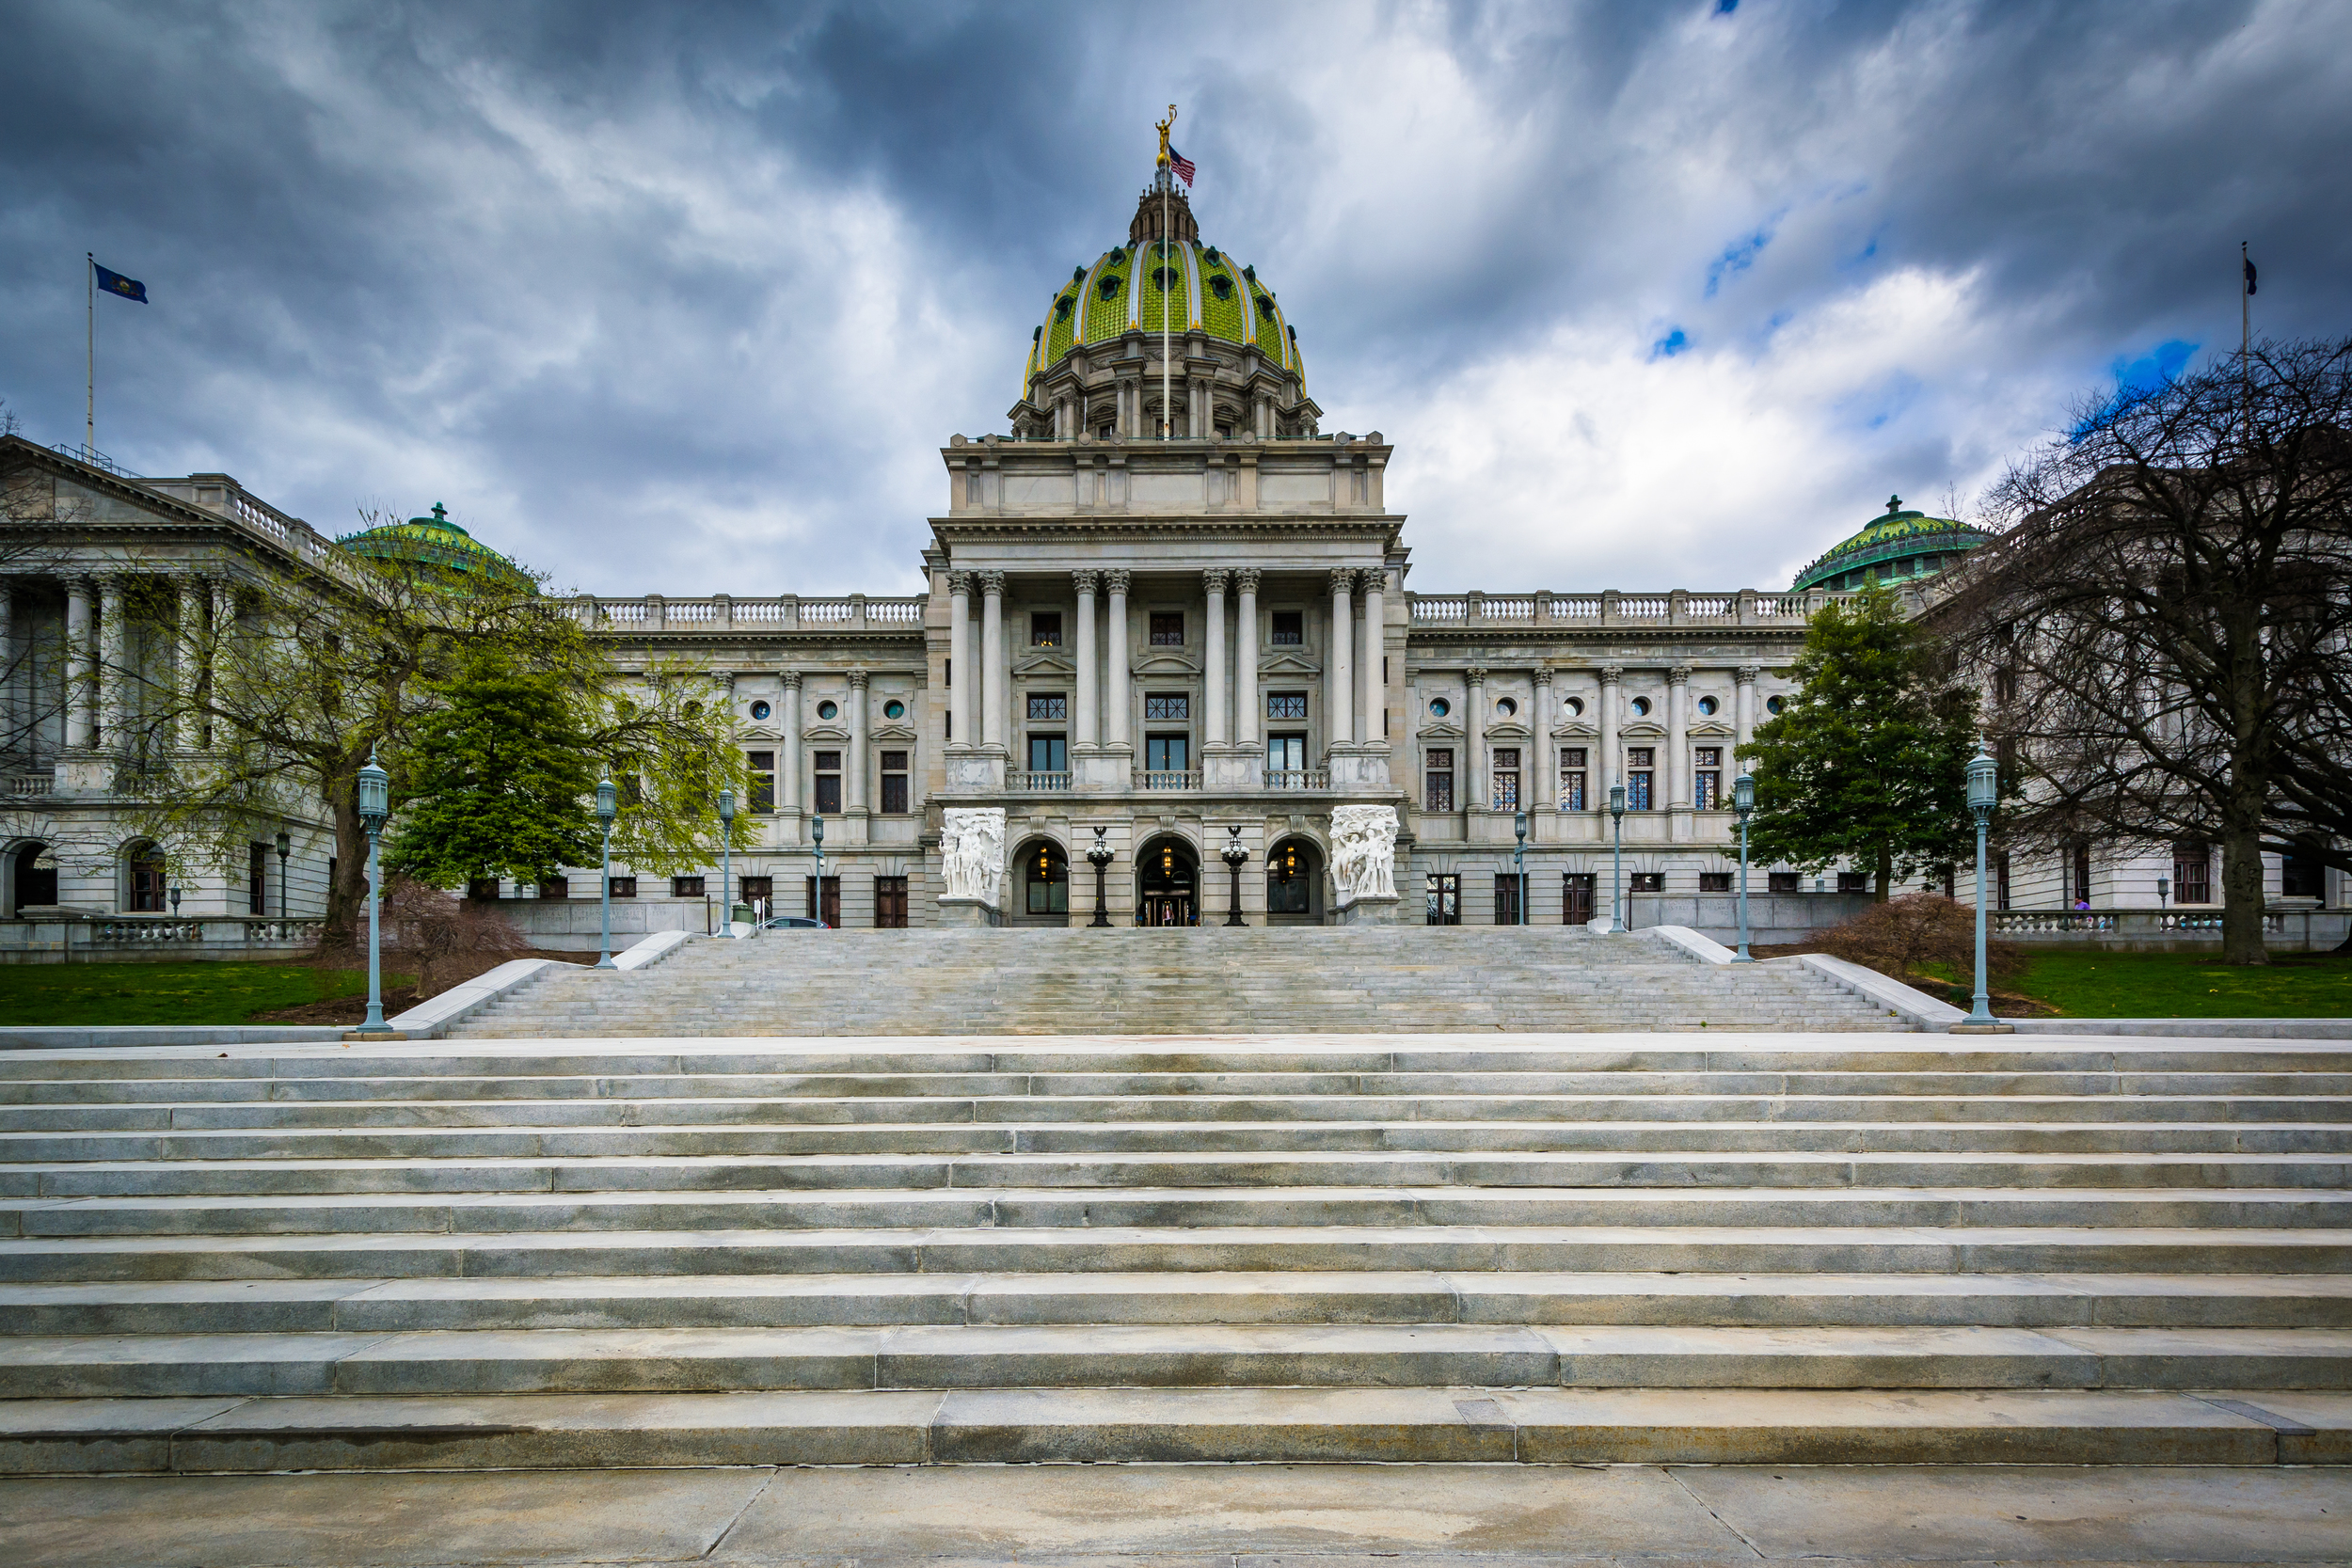 SALVO Strategies offers unmatched Government Relations services in Harrisburg, Pittsburgh, and Washington, D.C. We specialize in communications, public relations, procurement, and direct lobbying. Our mission is to be our clients' voice in government.